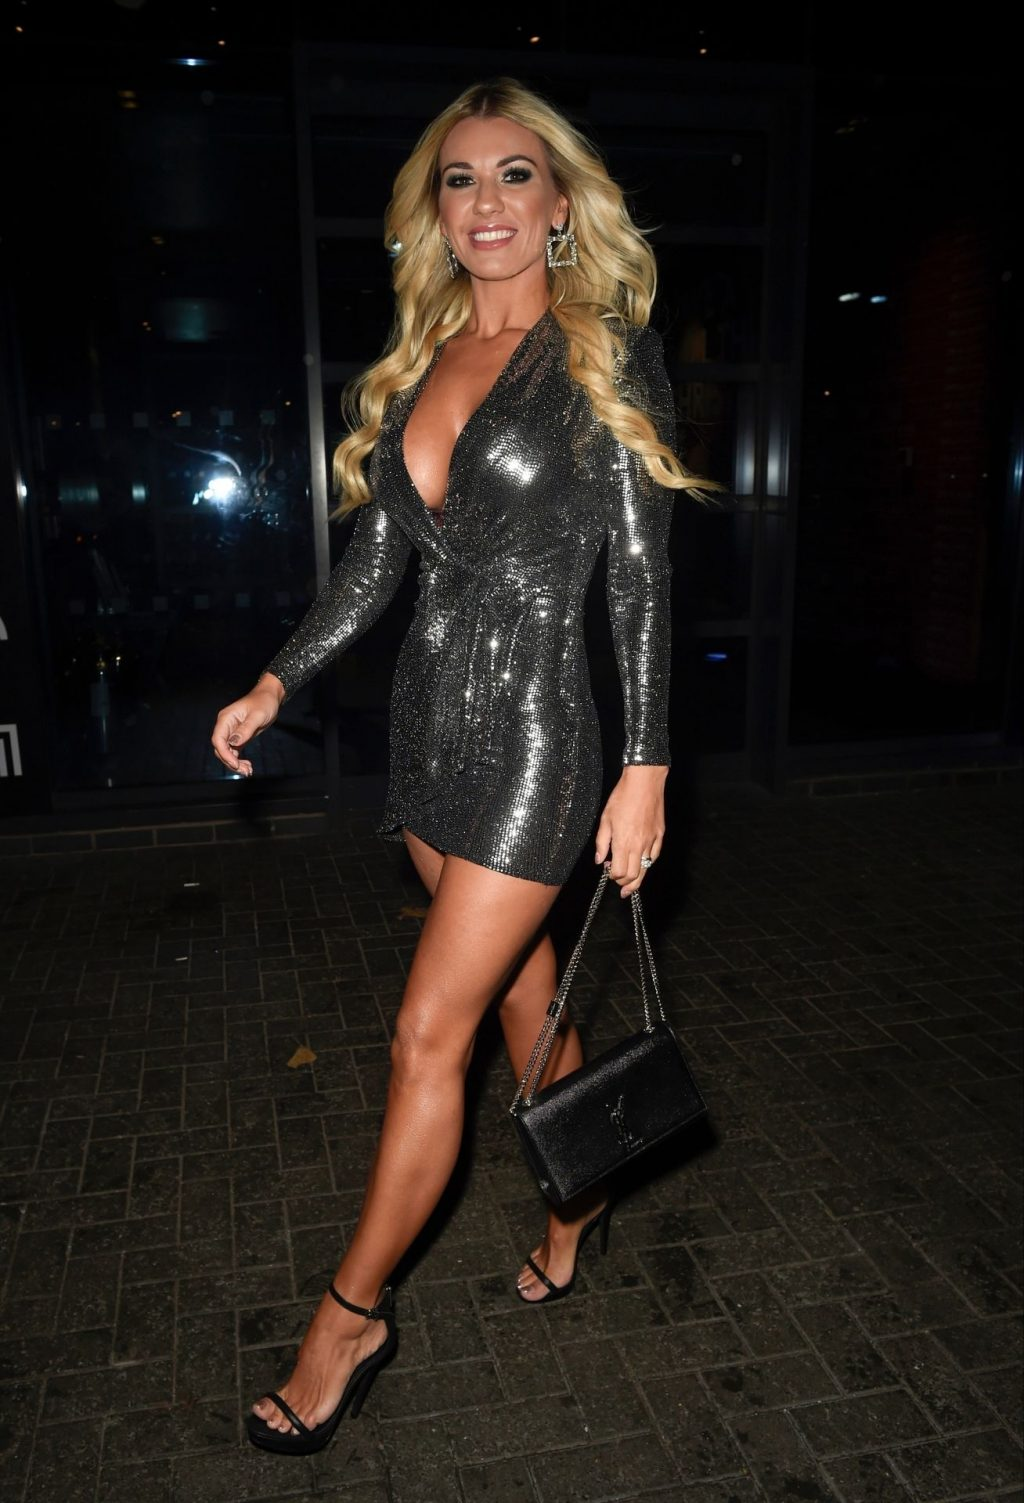 Christine McGuinness Sexy (66 Photos)